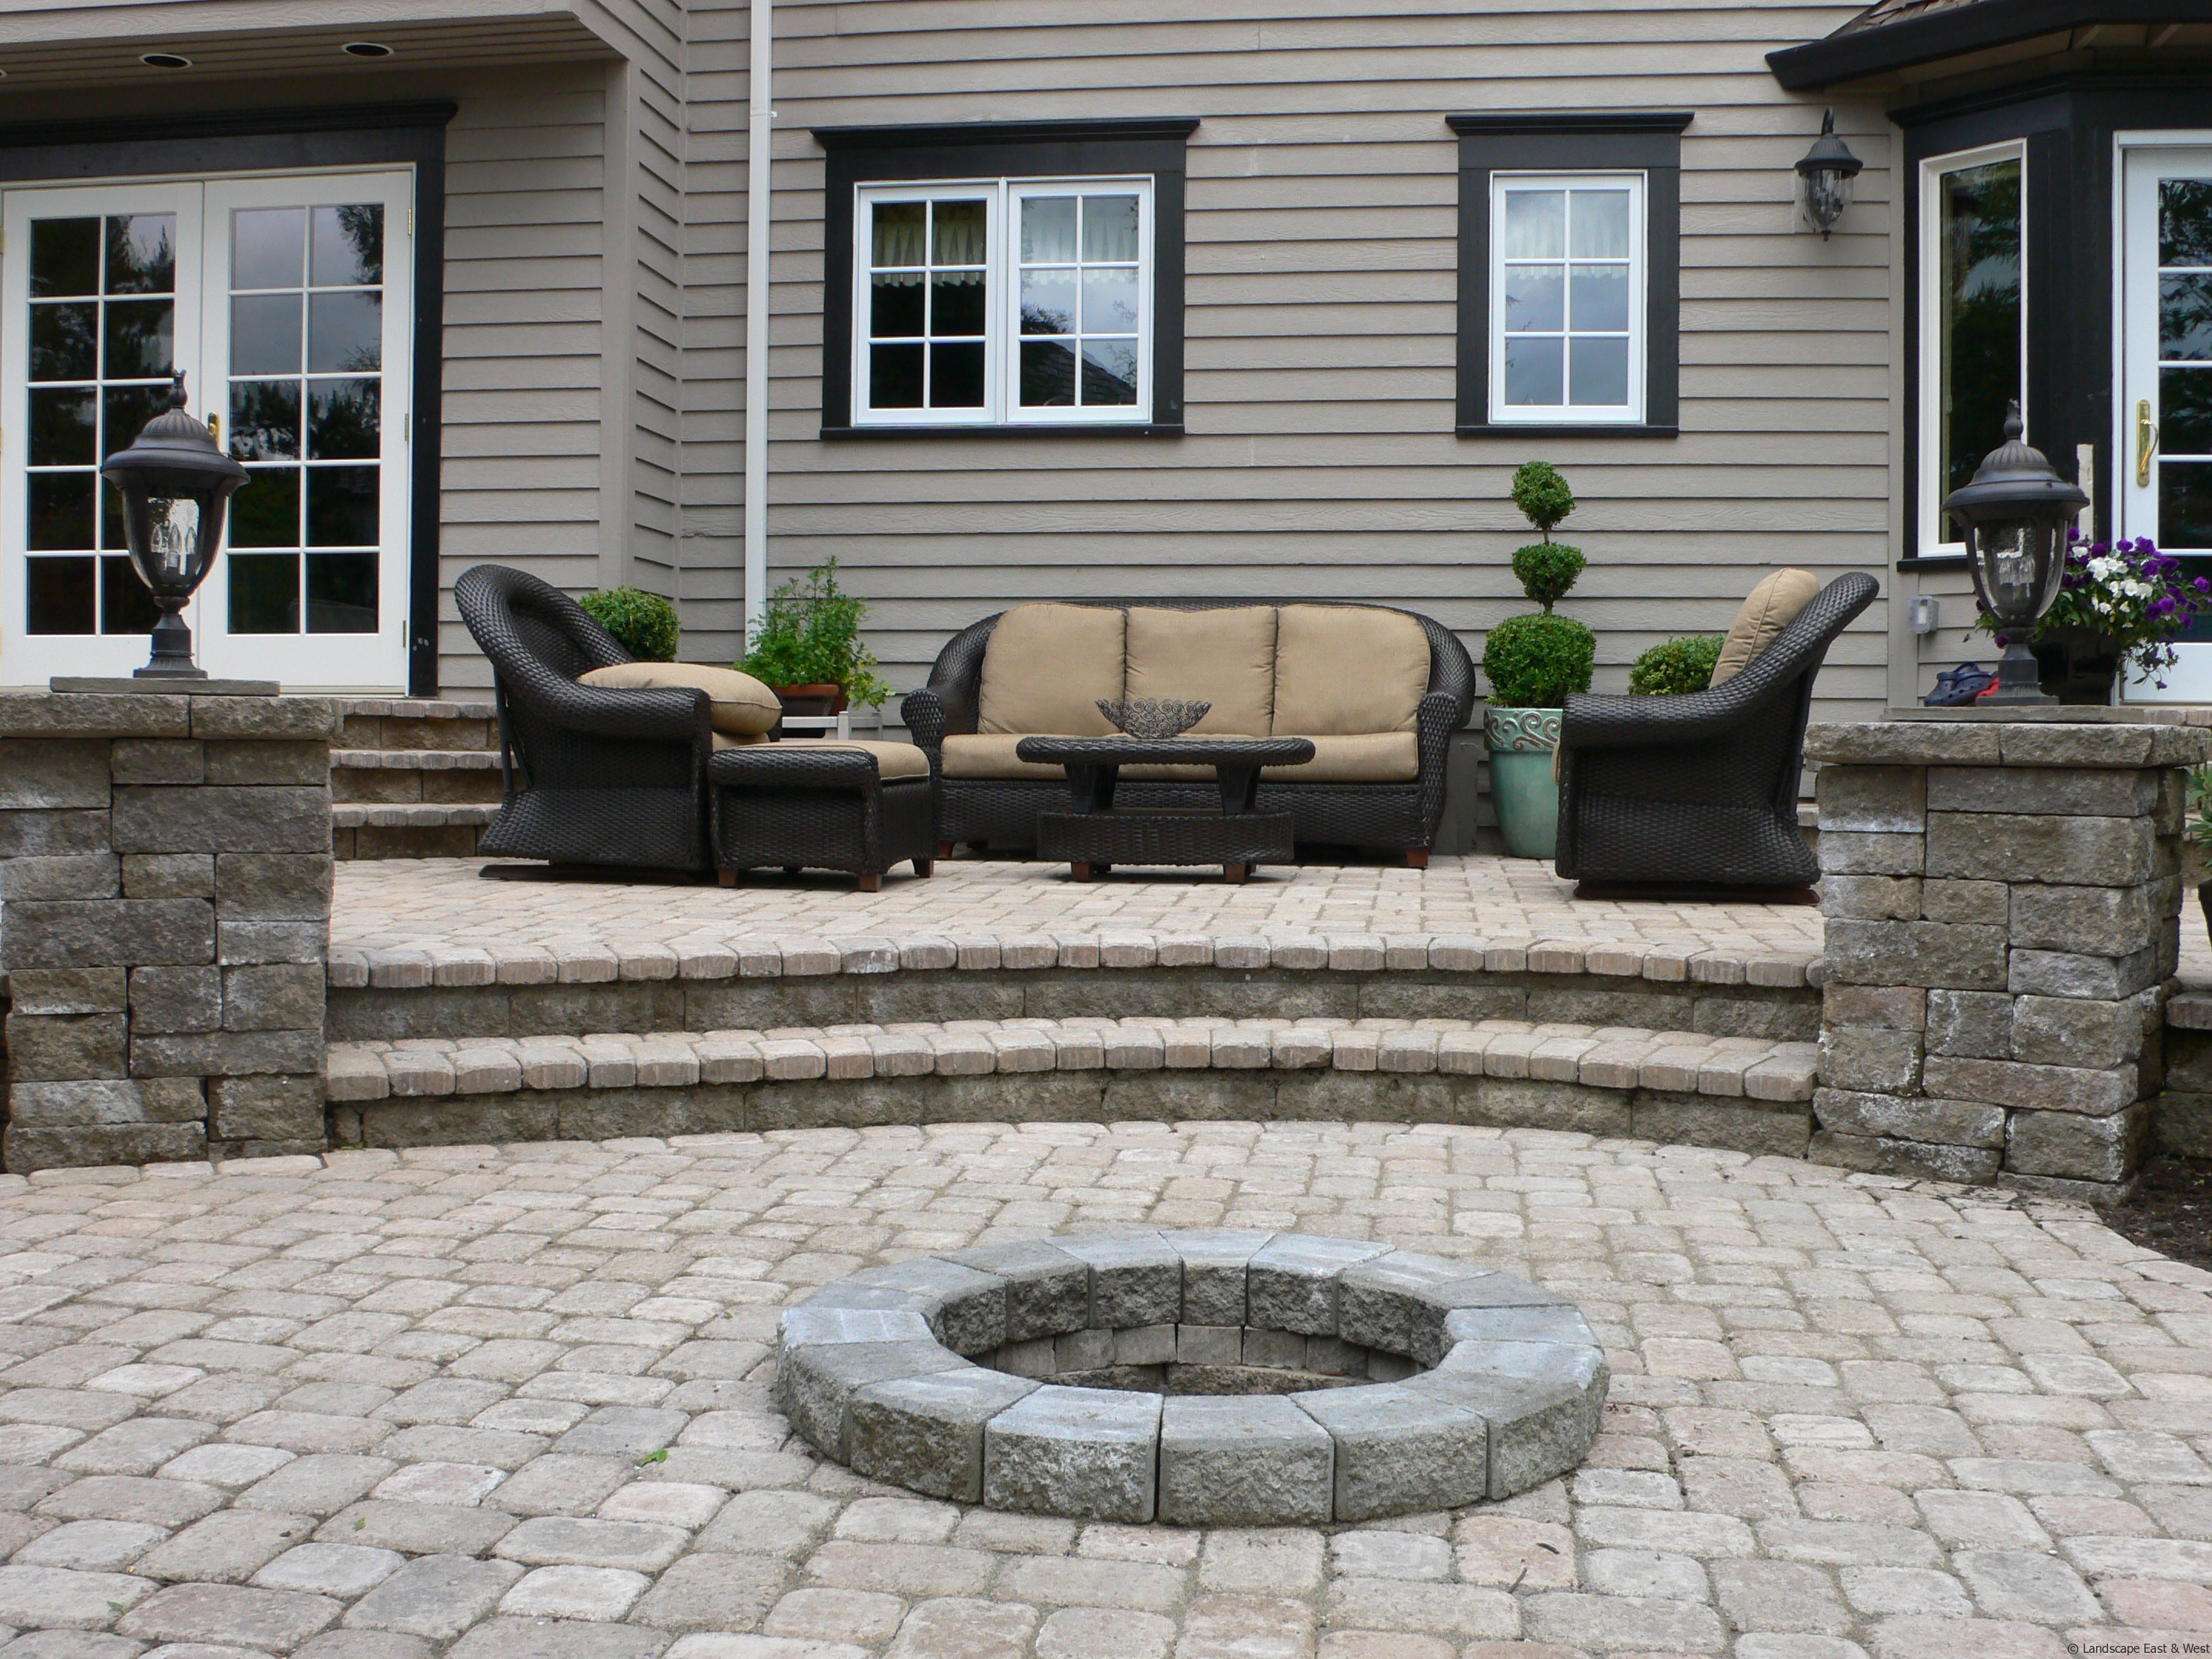 Patio Designes 5 Ways To Improve Patio Designs For Portland Landscaping